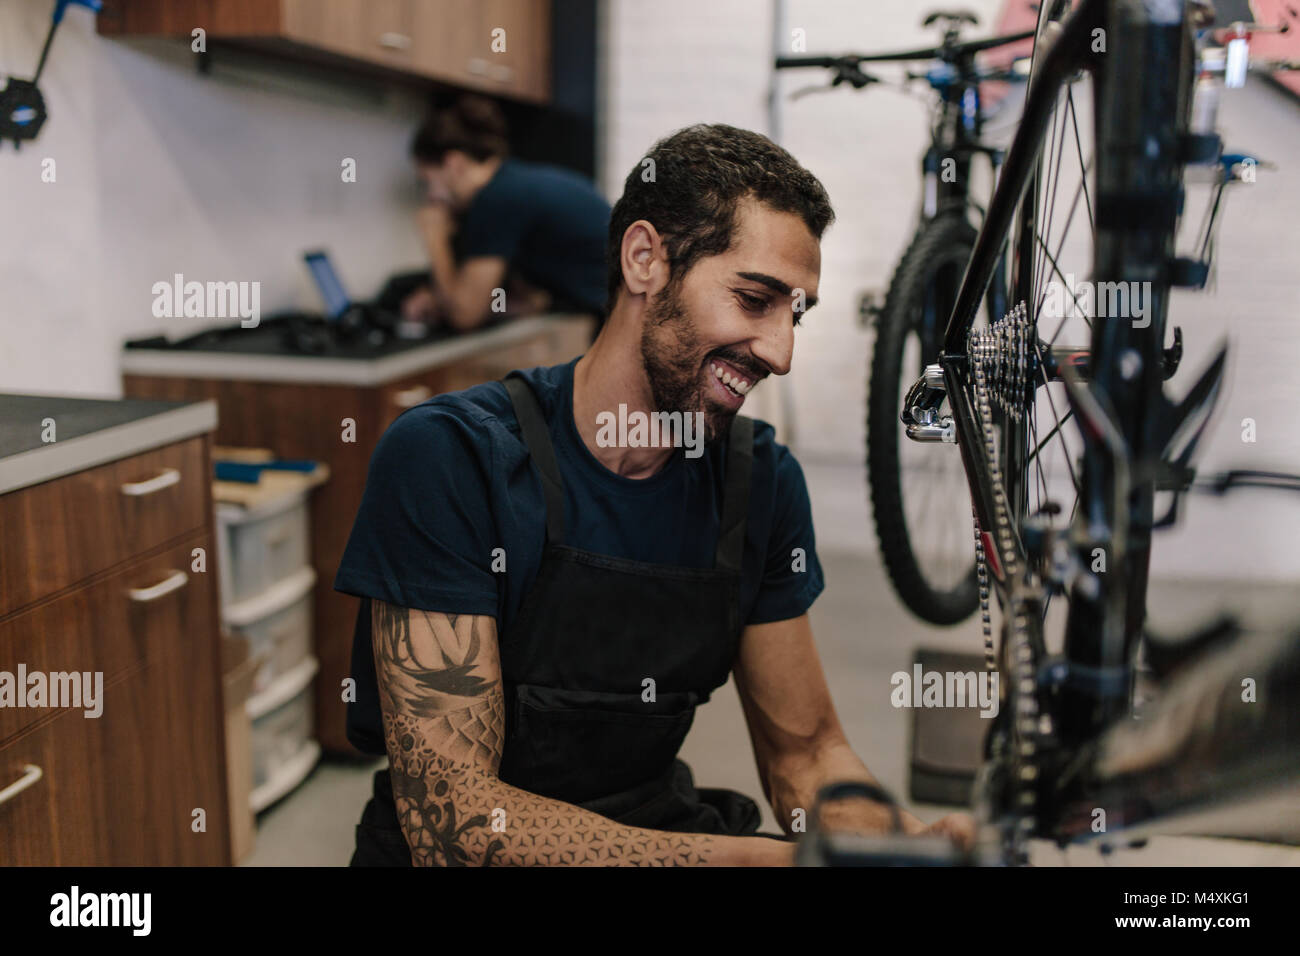 Man working on a bicycle in a repair shop. Smiling worker fixing a bicycle in workshop. - Stock Image